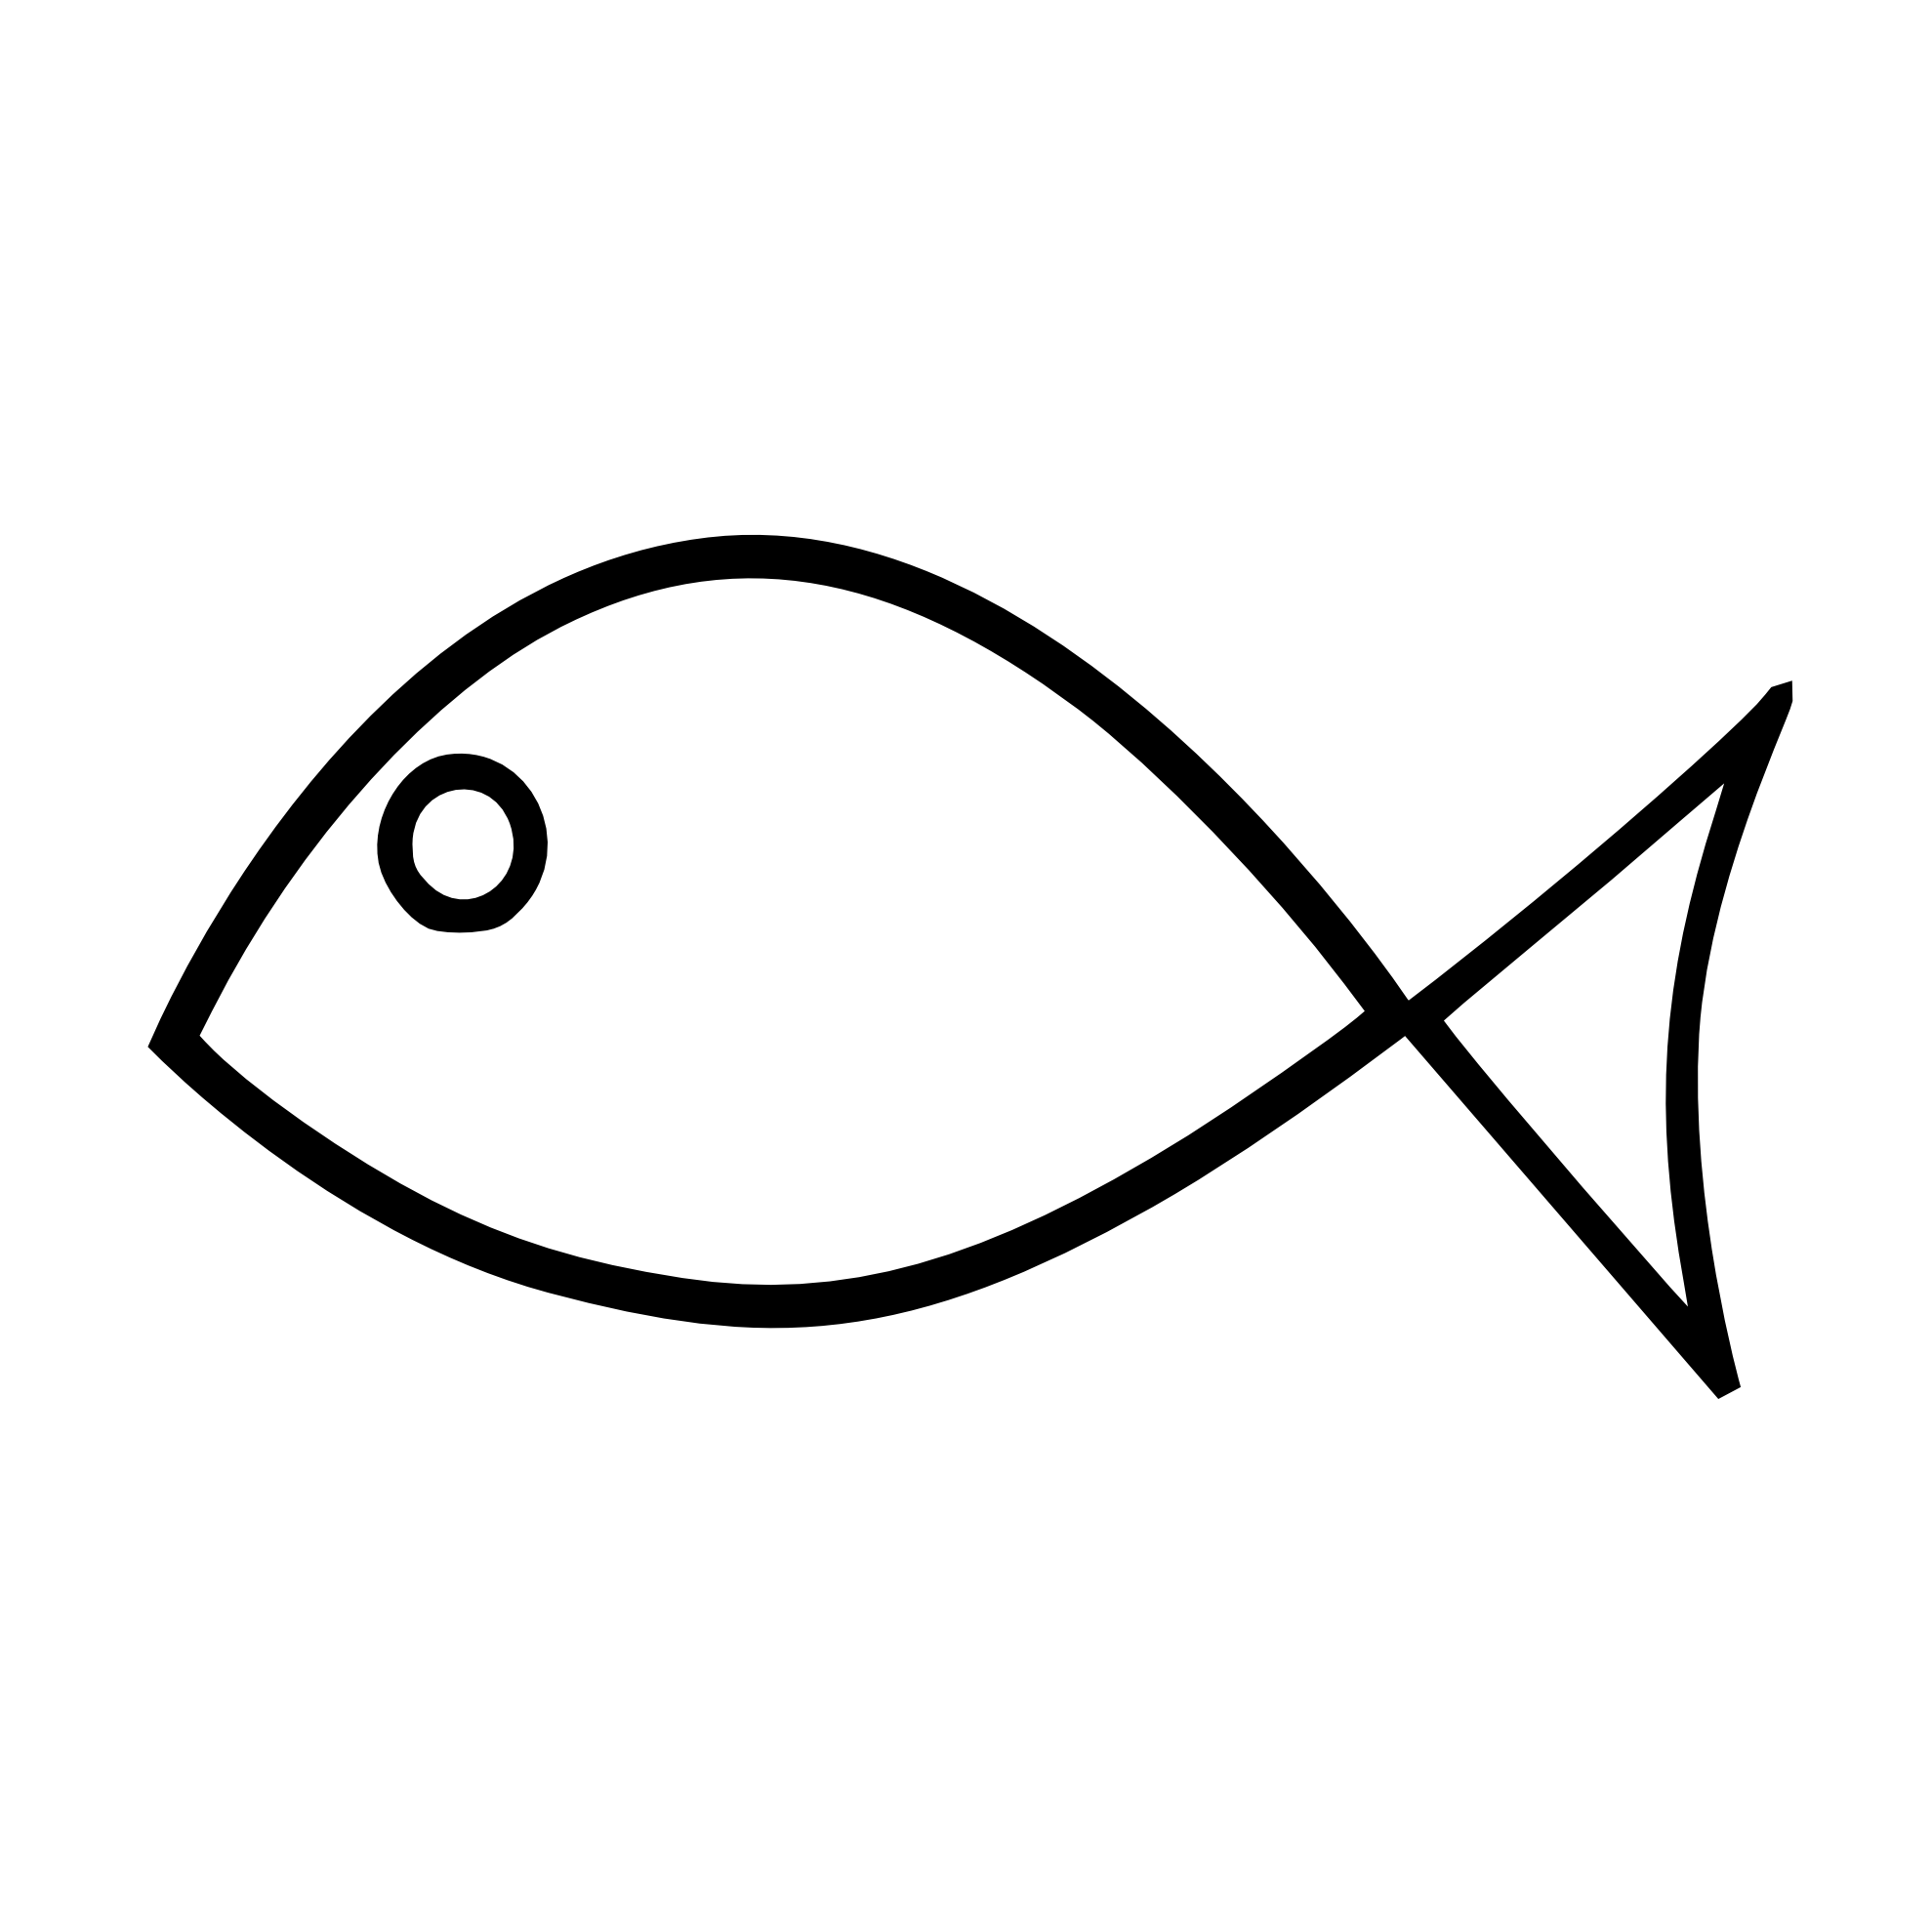 Fish black and white fish outline clipart black and white free 3